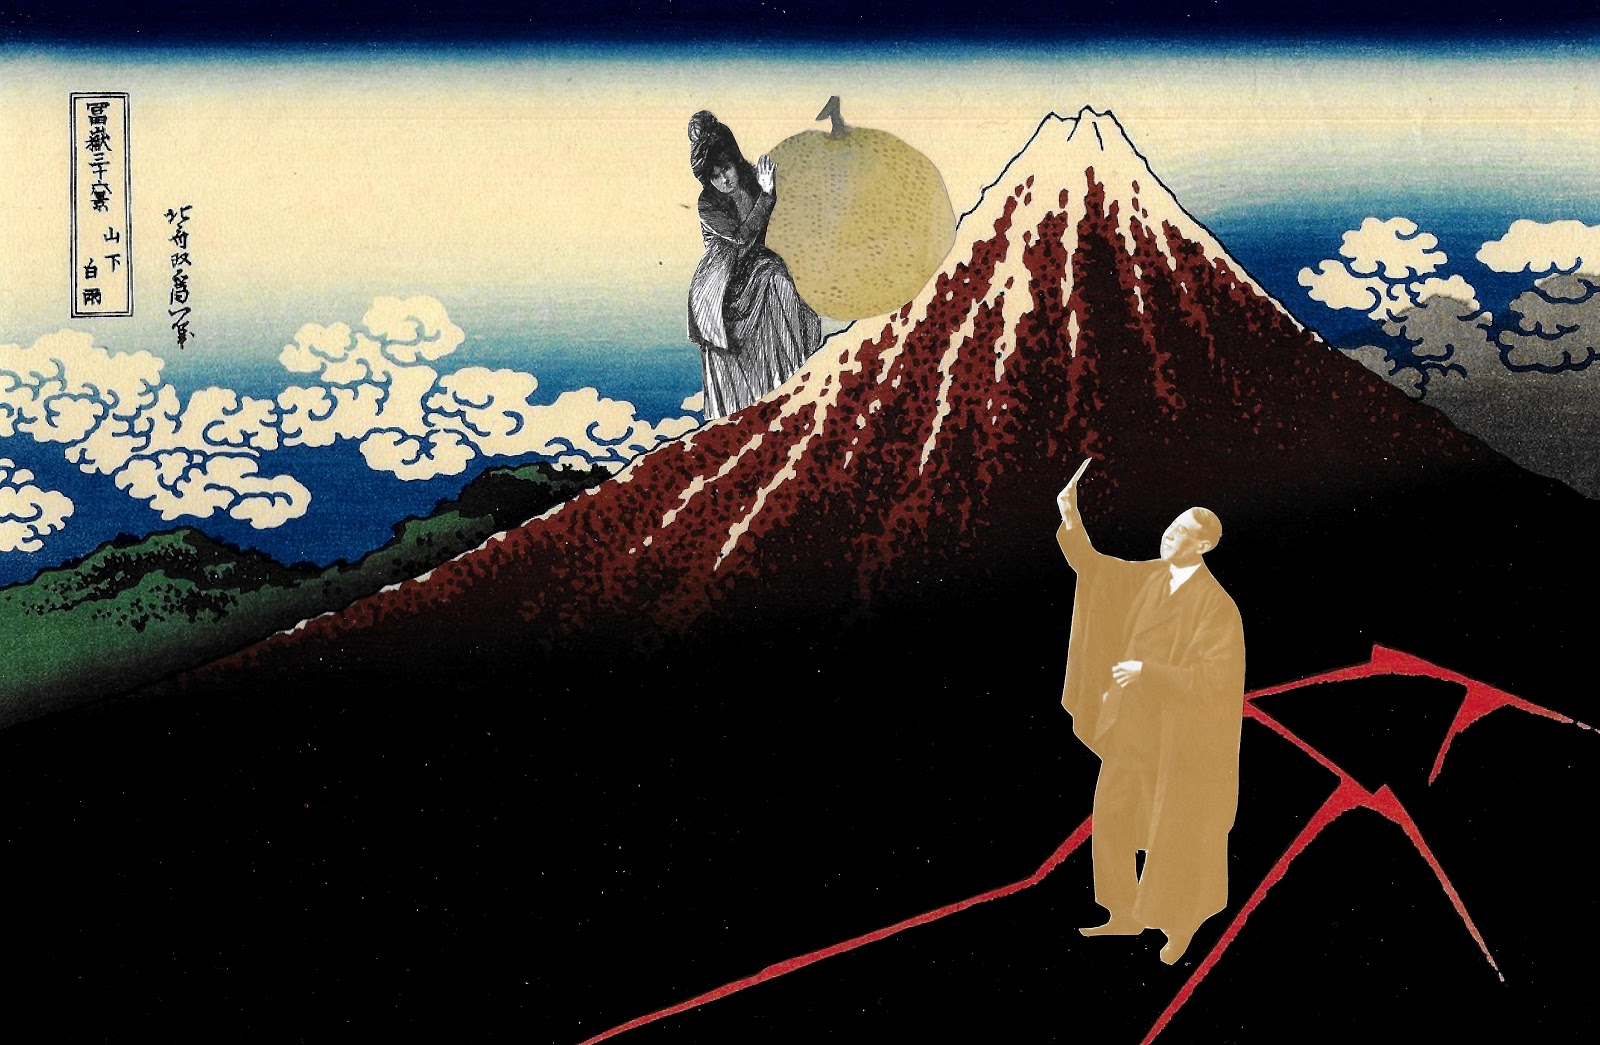 Female suffragette rolling a piece of Yuzu fruit up Mt. Fuji. Disinterested male professor looks at his cell phone.